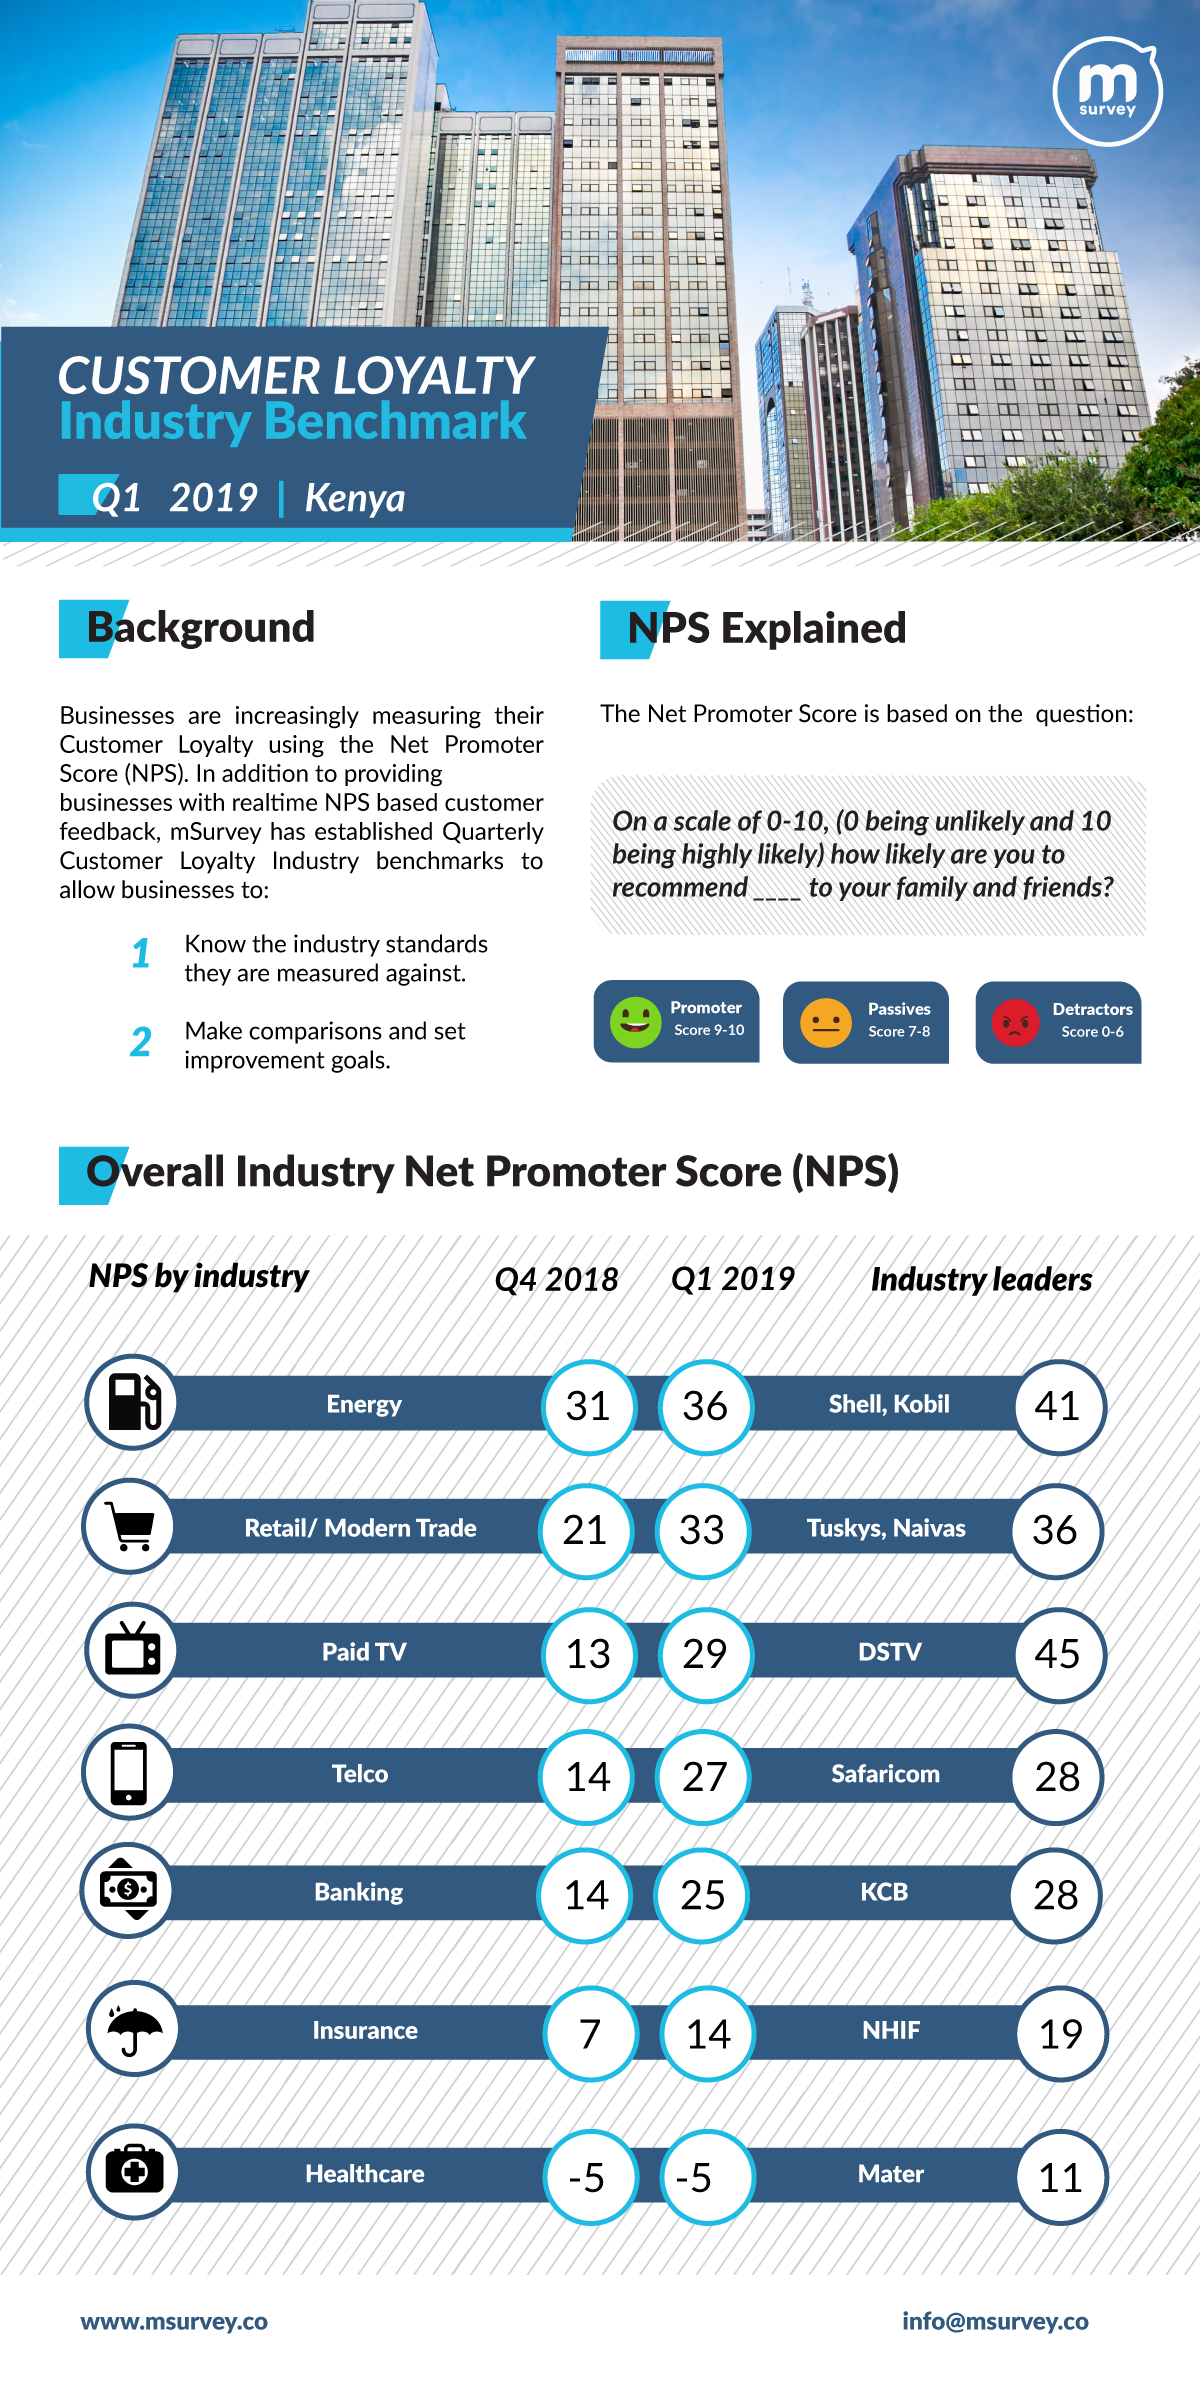 mSurvey Customer Loyalty Benchmark Q1, 2019 infographic